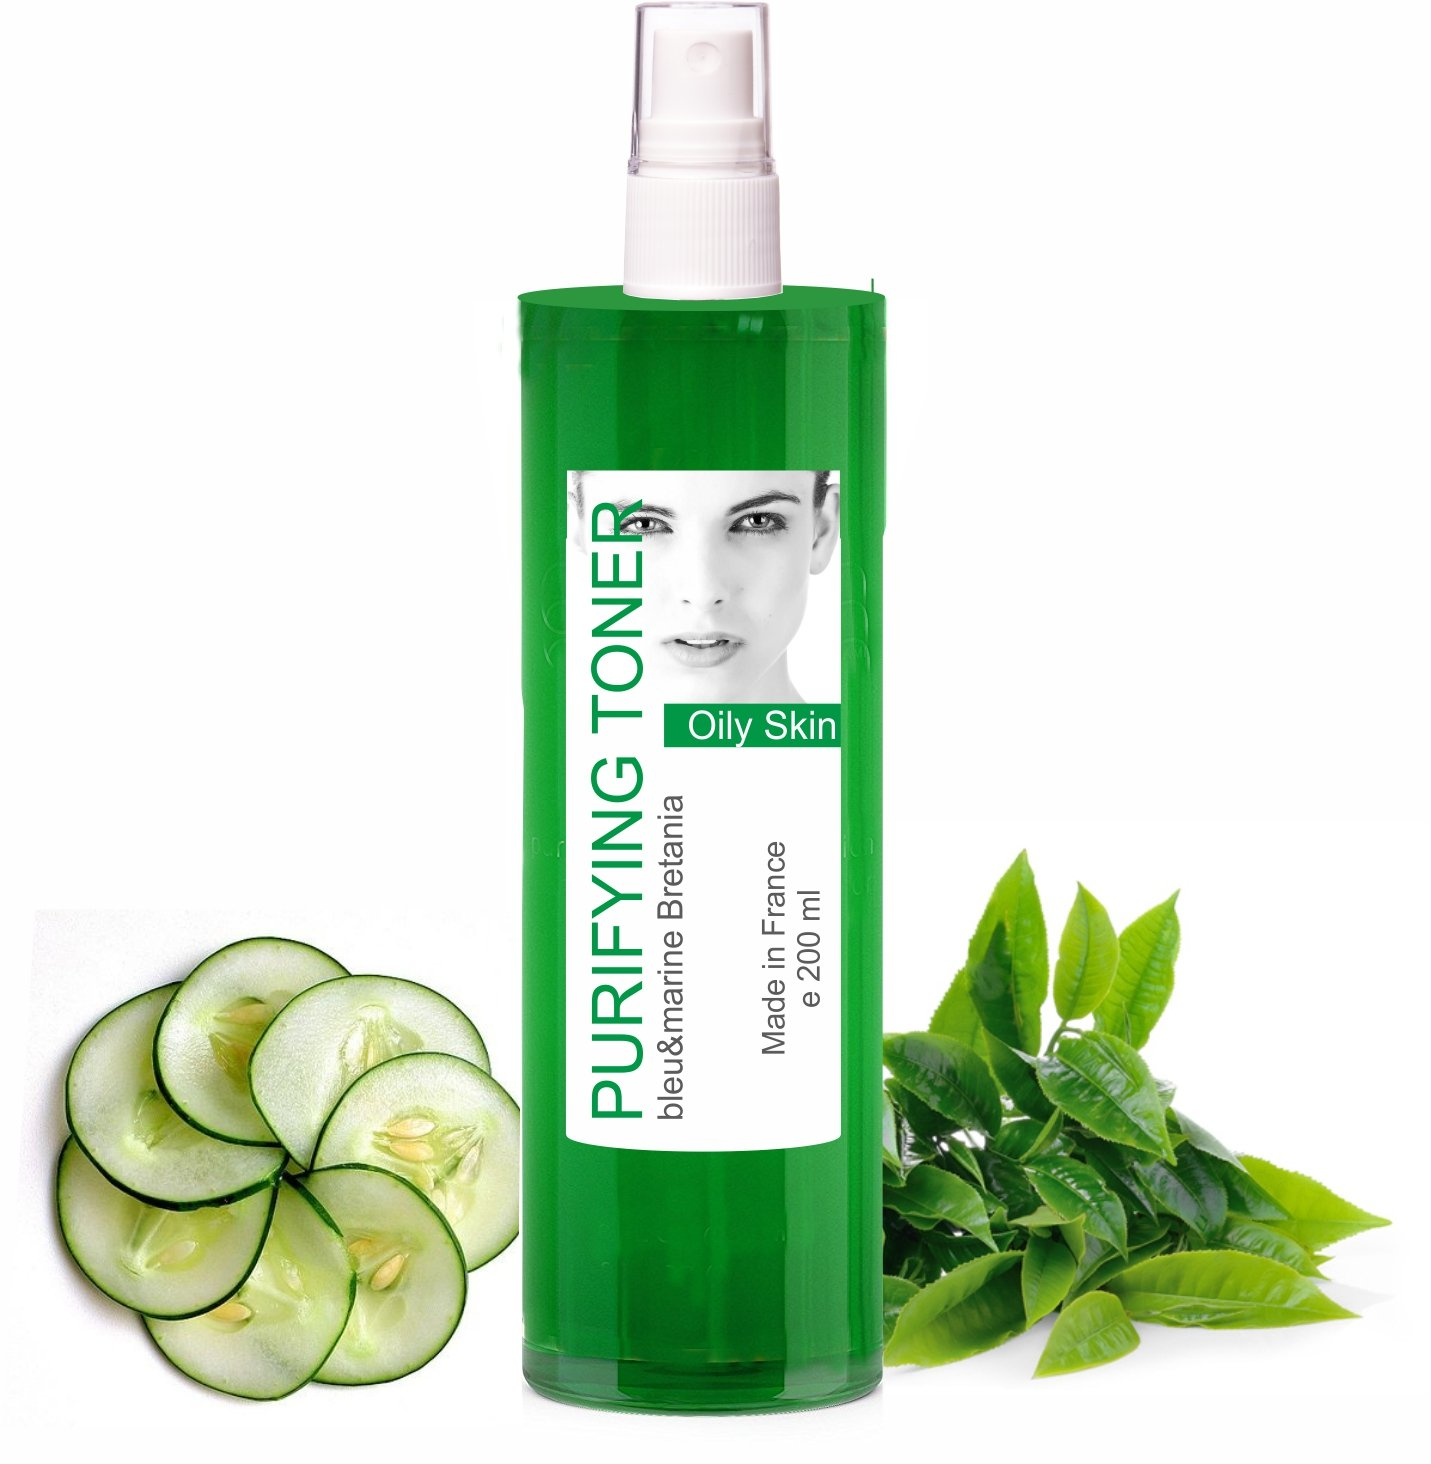 Green Tea Oily Skin Anti Blemishes Purifying Facial Toner 200 ml Mist - Alcohol free Tonic Lotion Made in France by bleu&marine Bretania